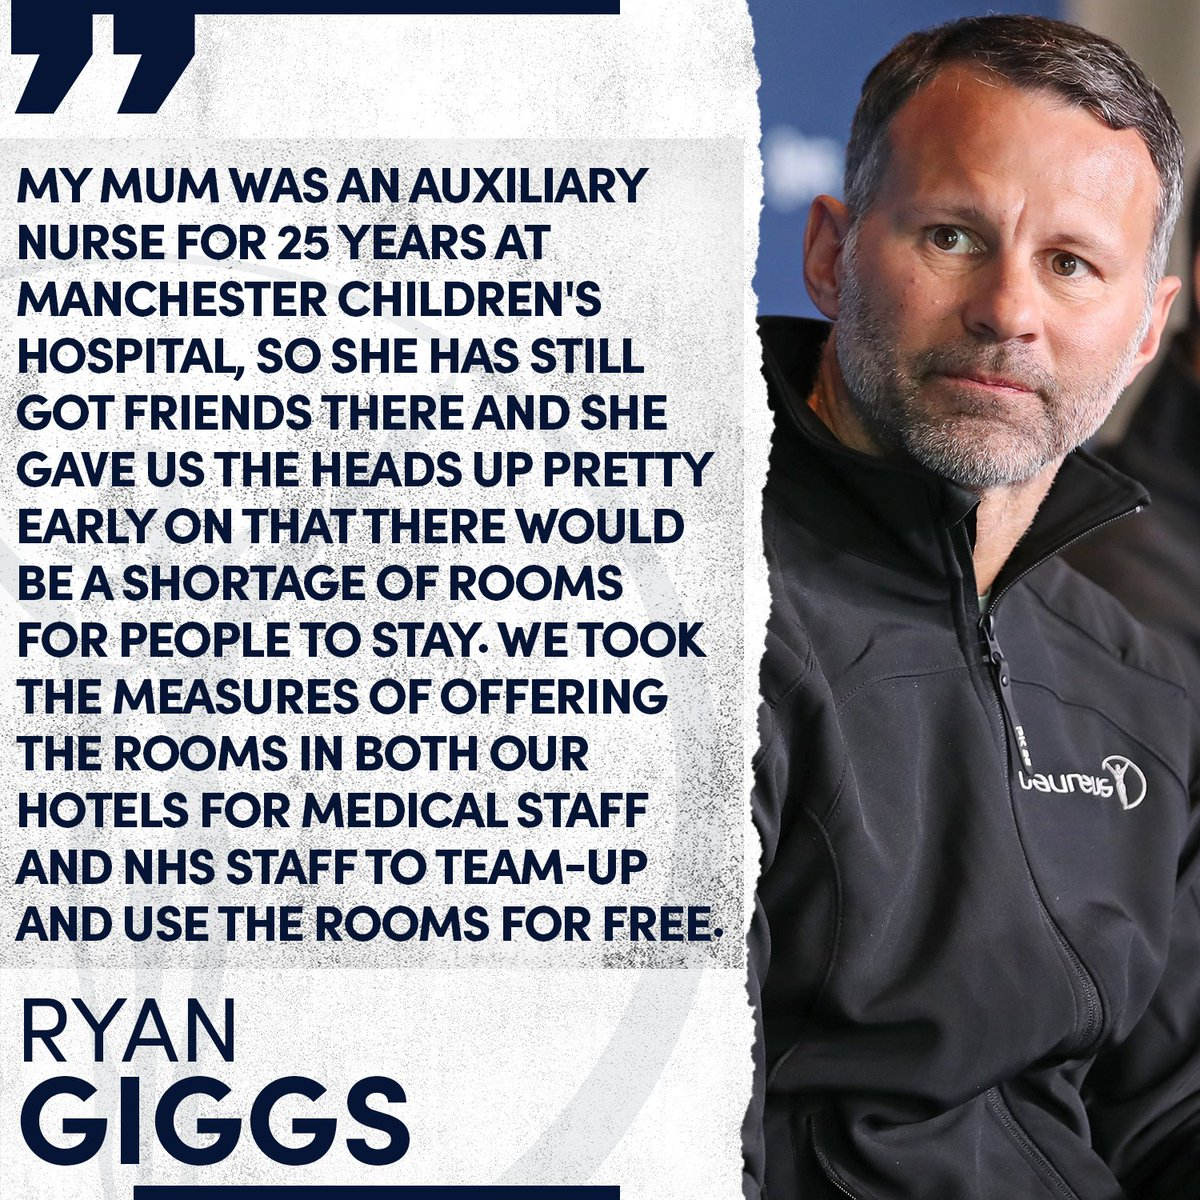 A couple of weeks ago Laureus Academy member Ryan Giggs and former Manchester United teammate Gary Neville made their hotels available for NHS workers in the UK ❤️  #StaySafeStayHealthy #StayHome